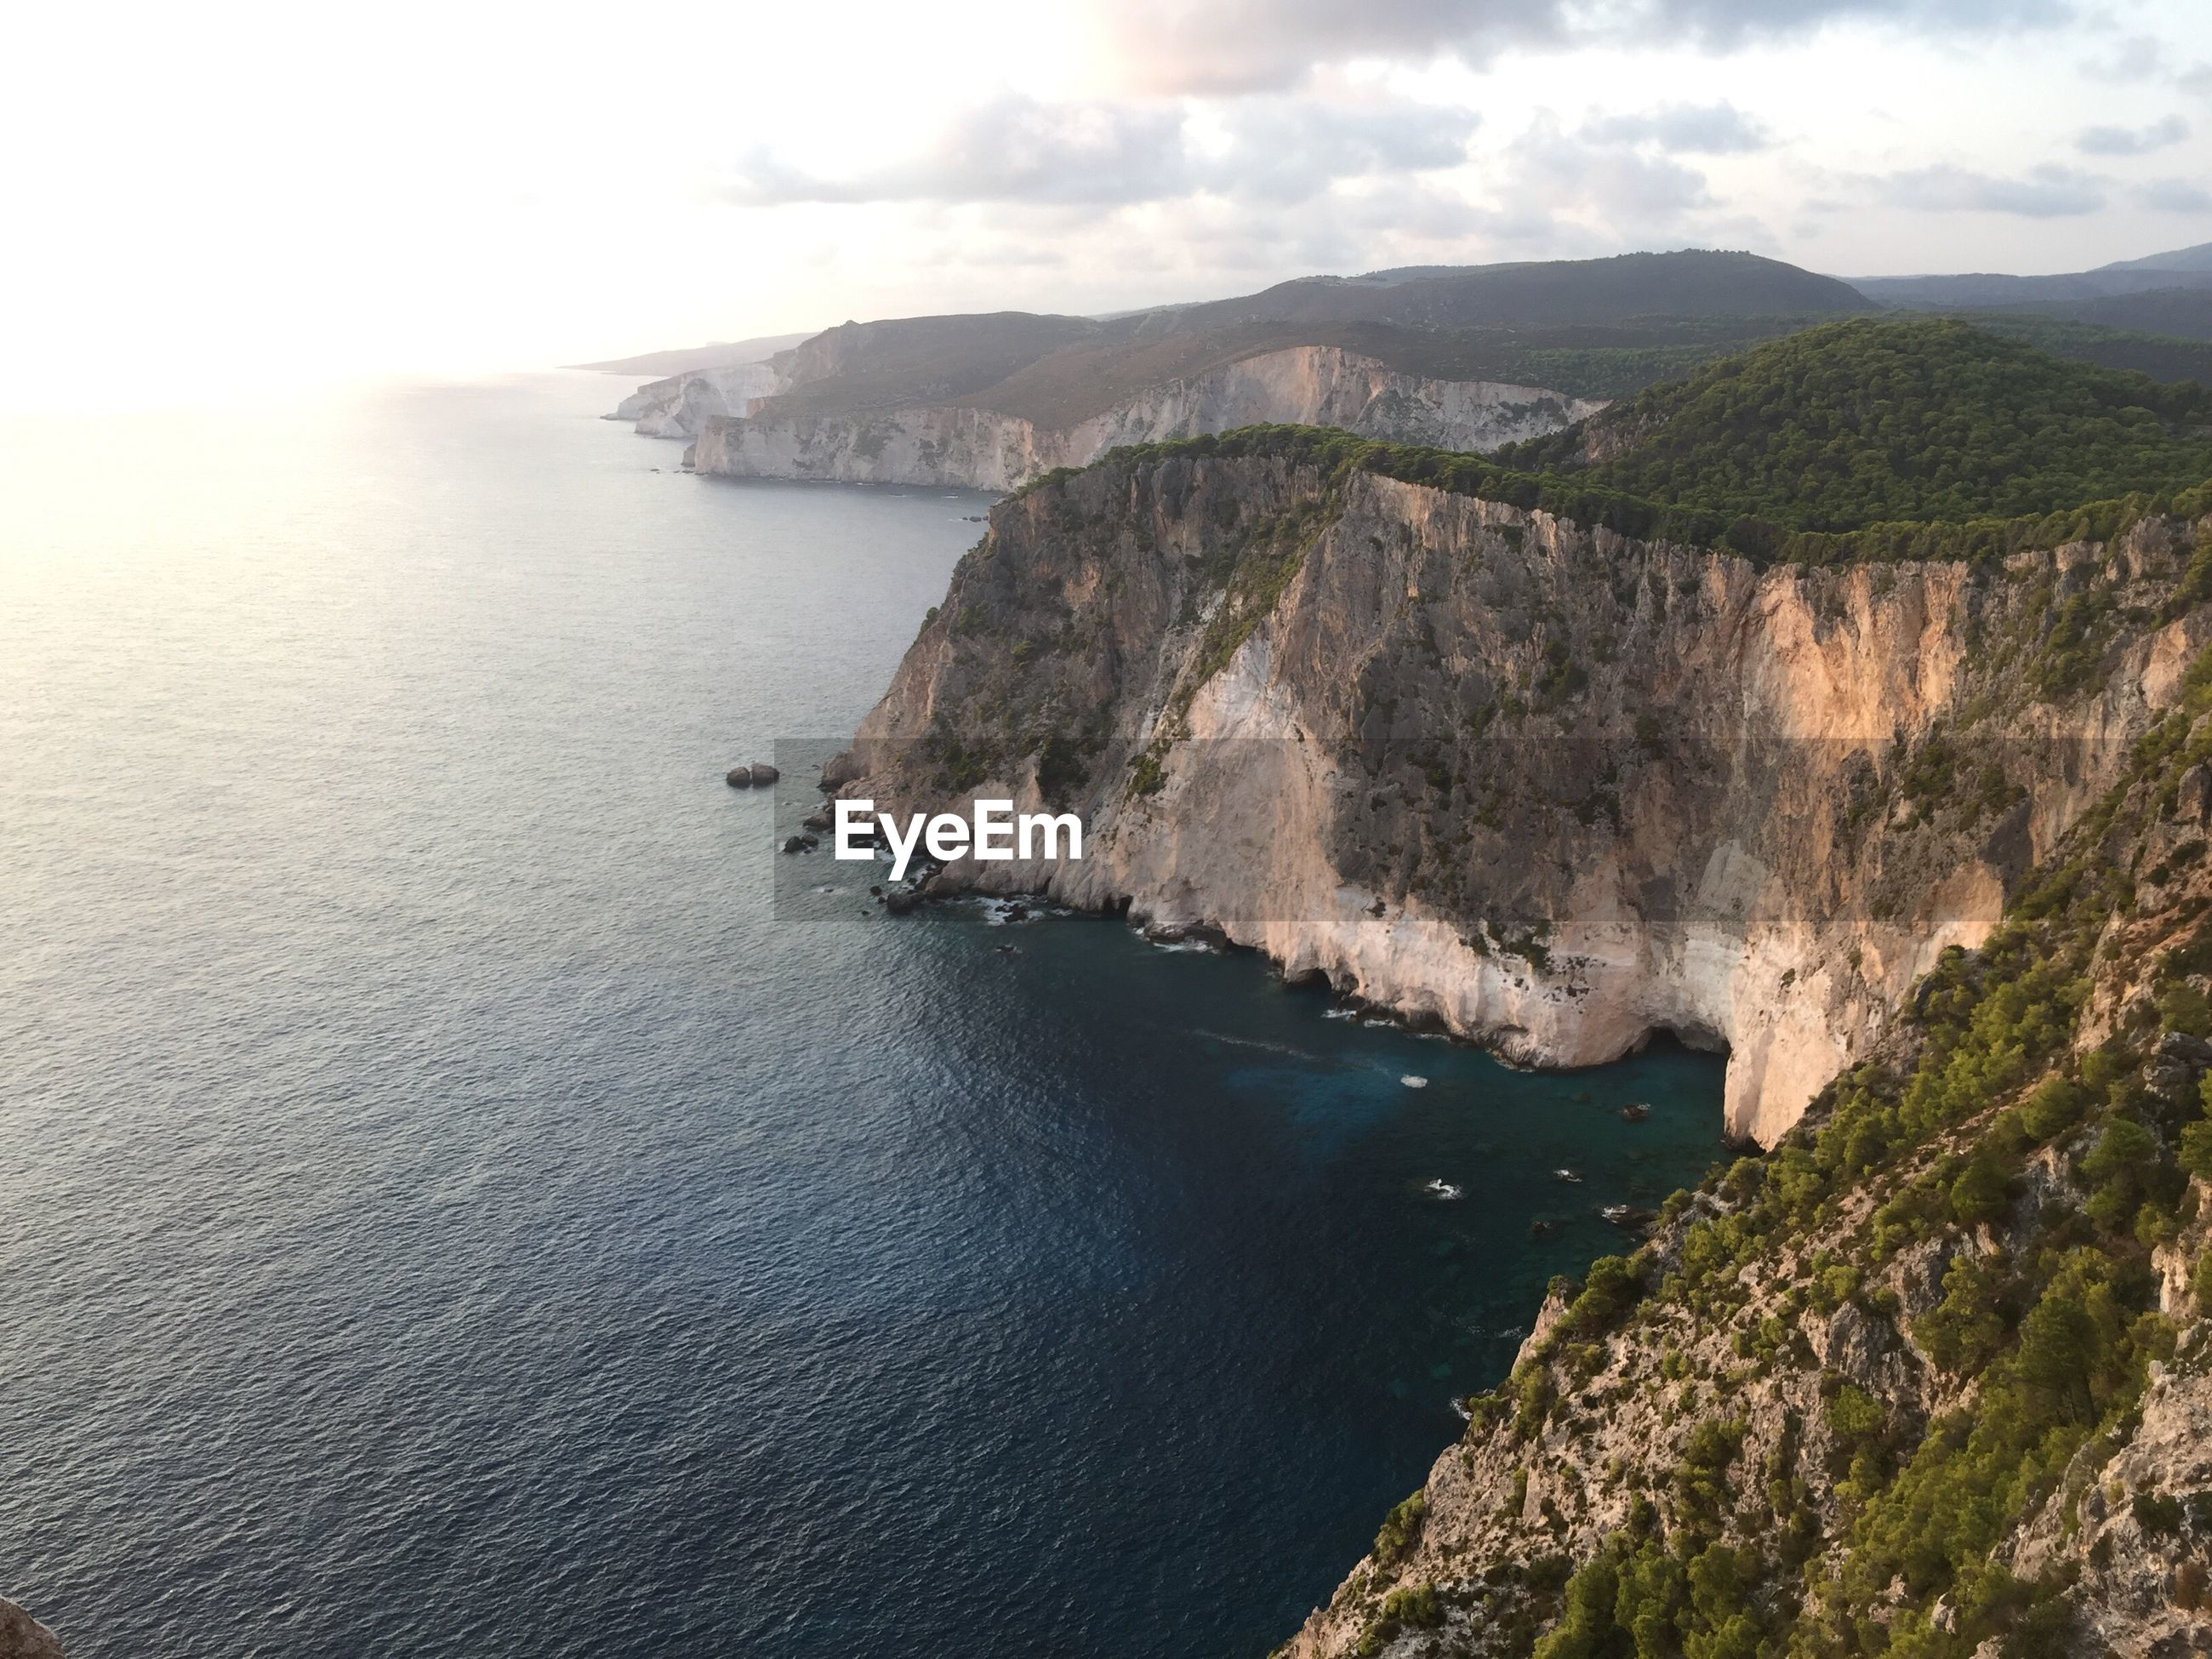 SCENIC VIEW OF SEA AND CLIFFS